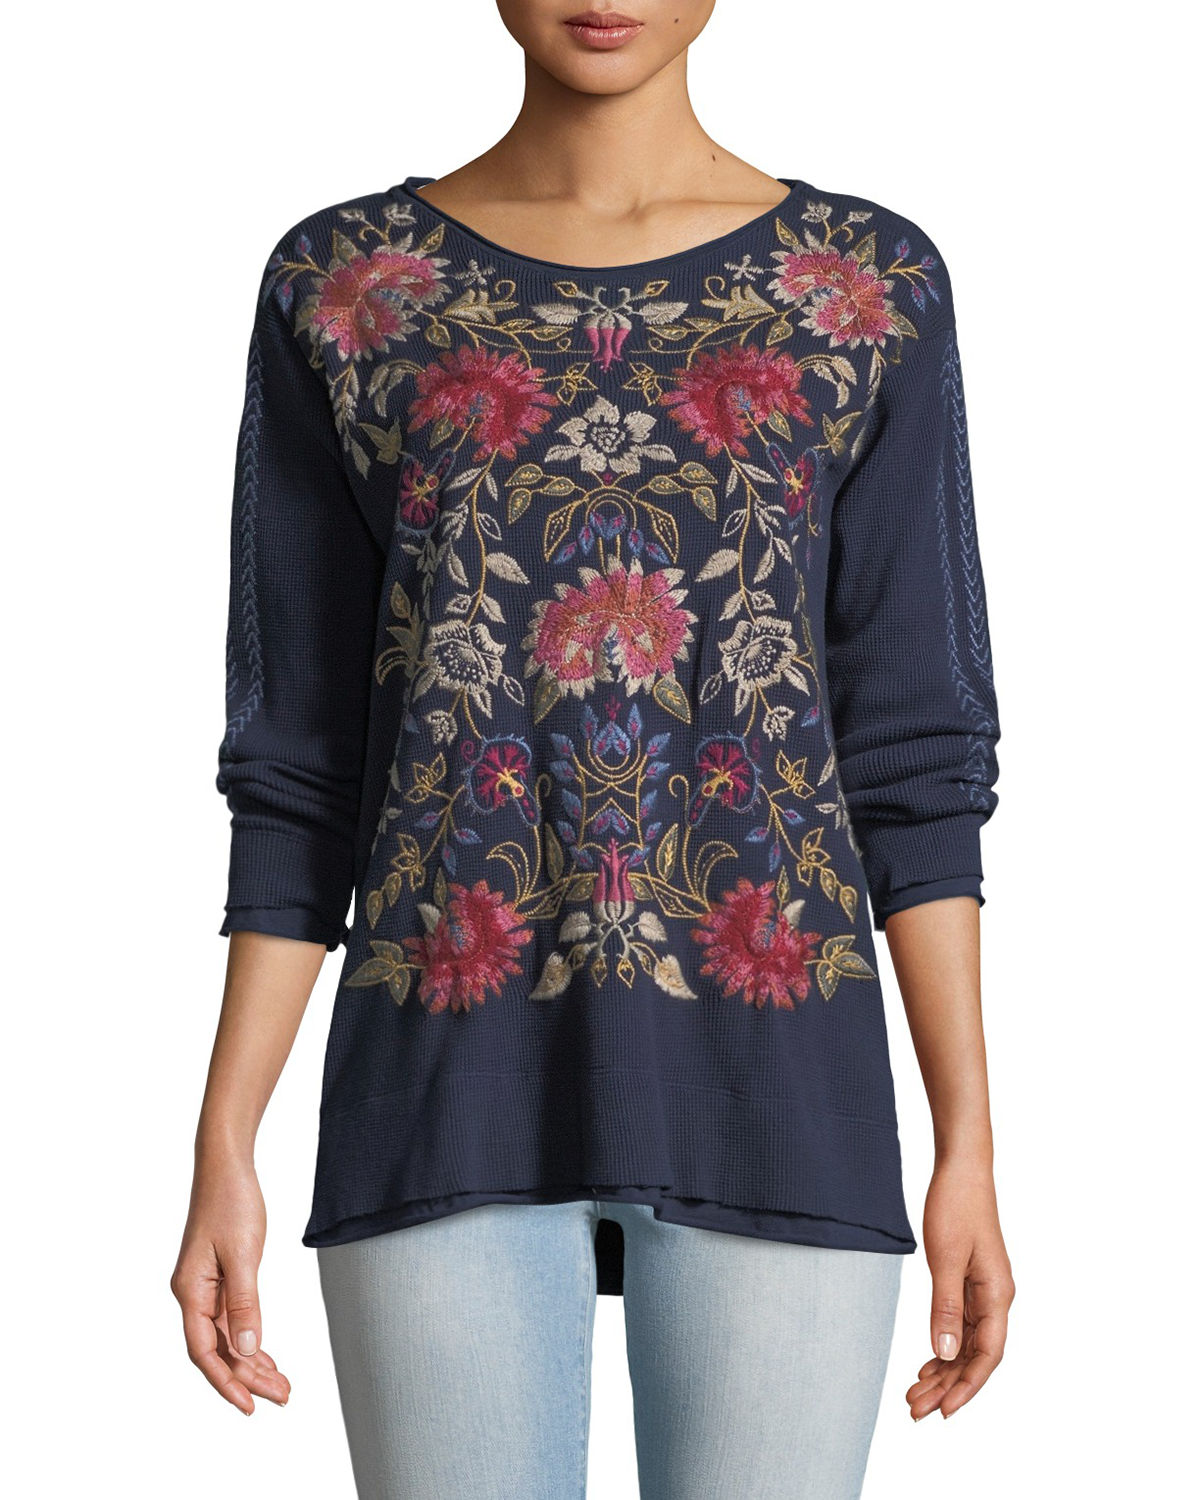 Simona Long-Sleeve Floral-Embroidered Thermal Top, Plus Size